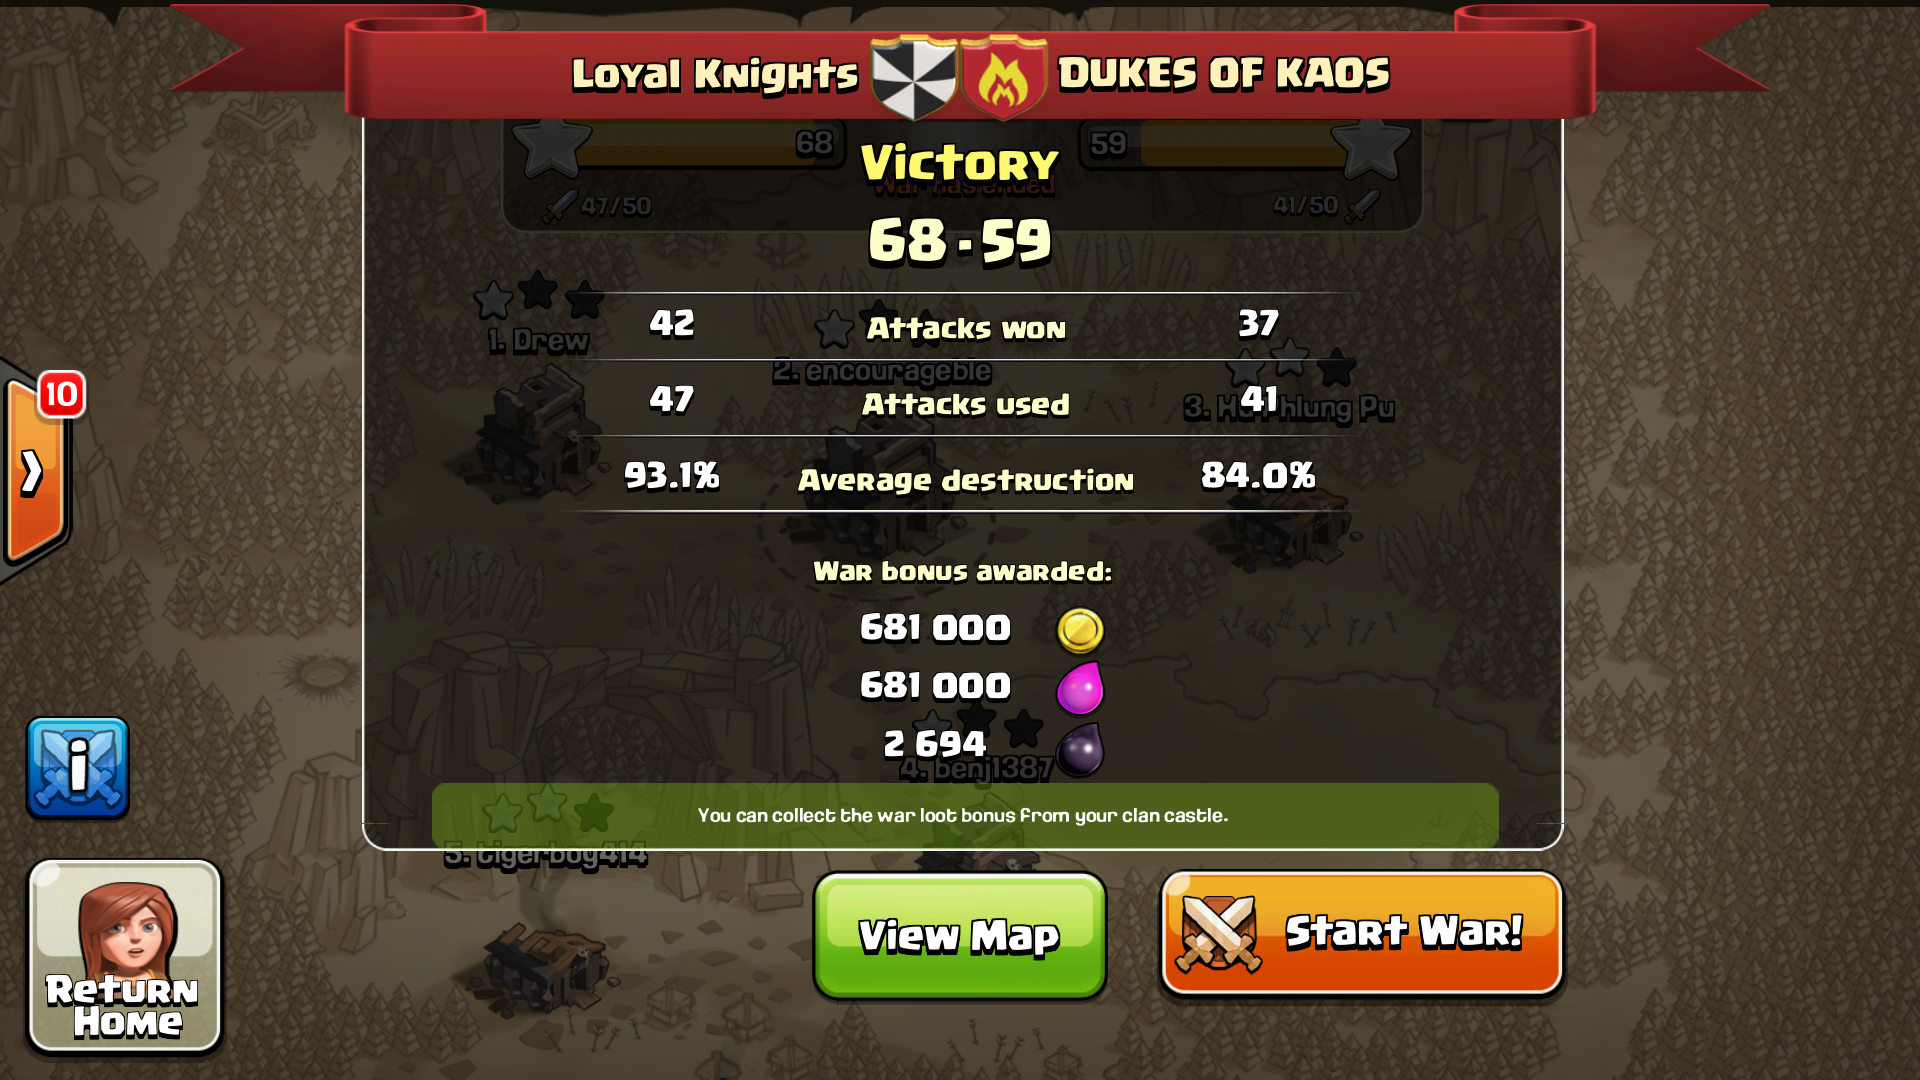 Loyal knights vs dukes of kaos loyal knights clash of for 12 rules of the knights of the round table